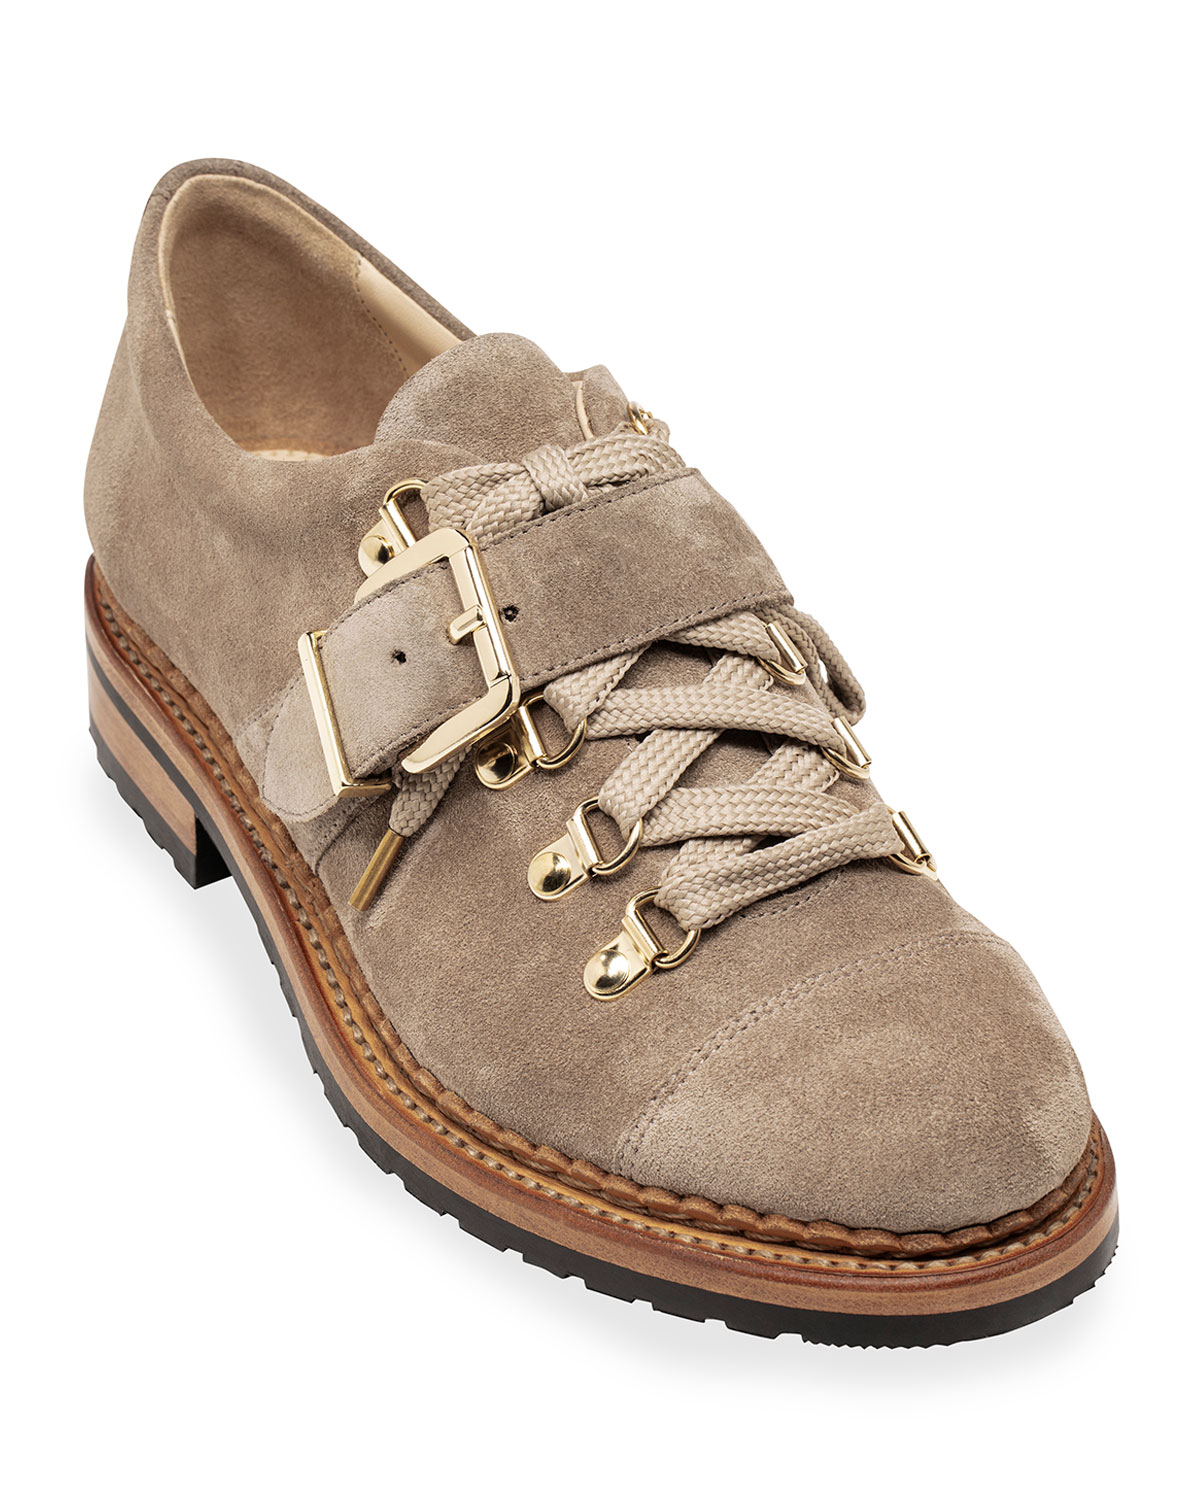 Mr. Logan Suede Buckle Loafers